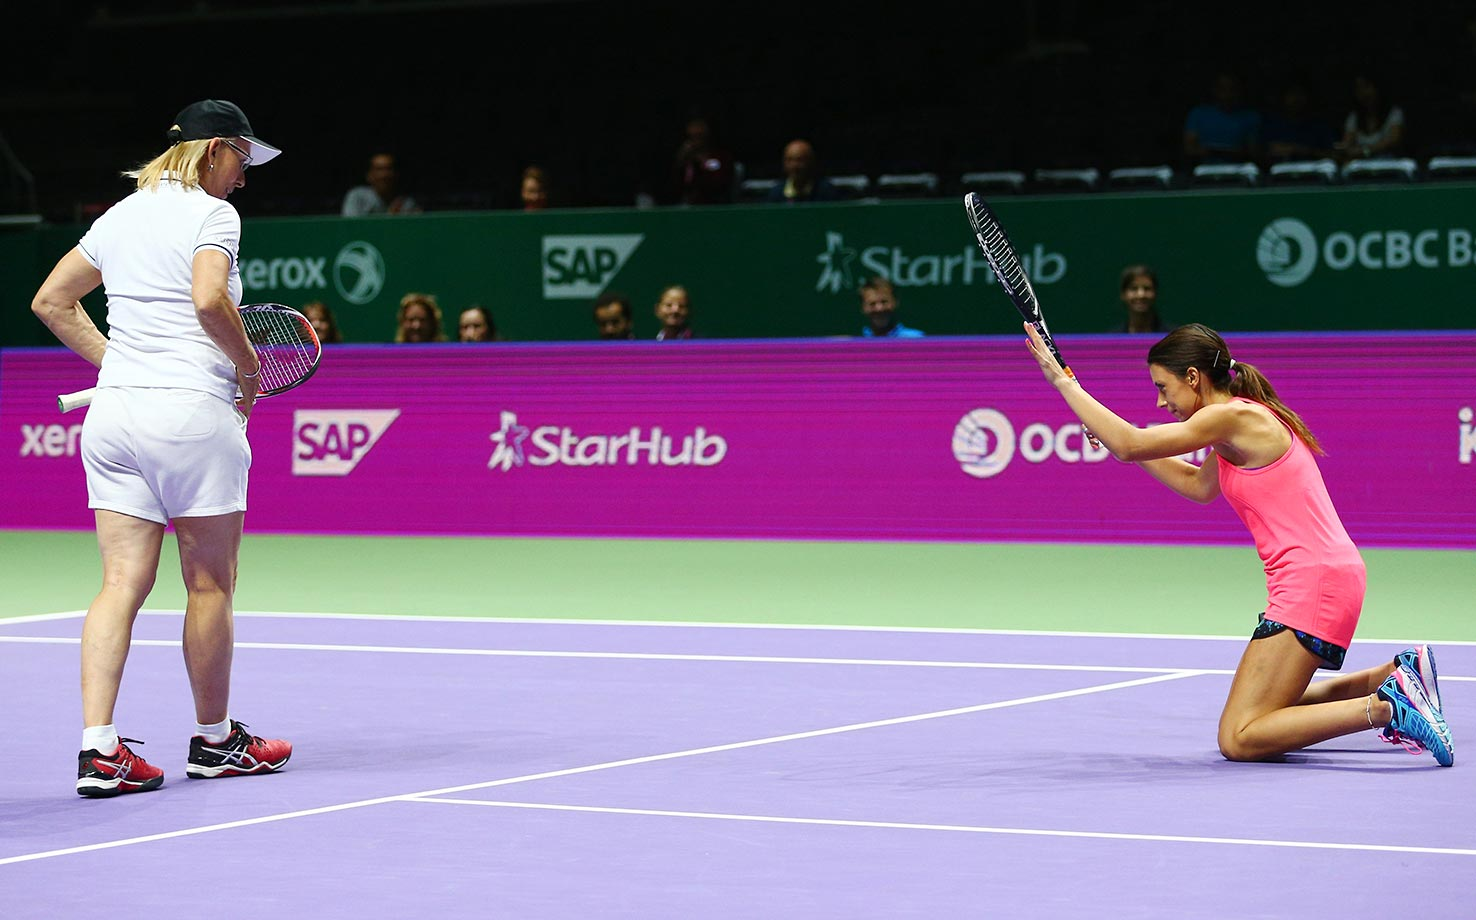 Martina Navratilova and Marion Bartoli during a legends doubles match against Tracy Austin and Arantxa Sanchez-Vicario in Singapore.